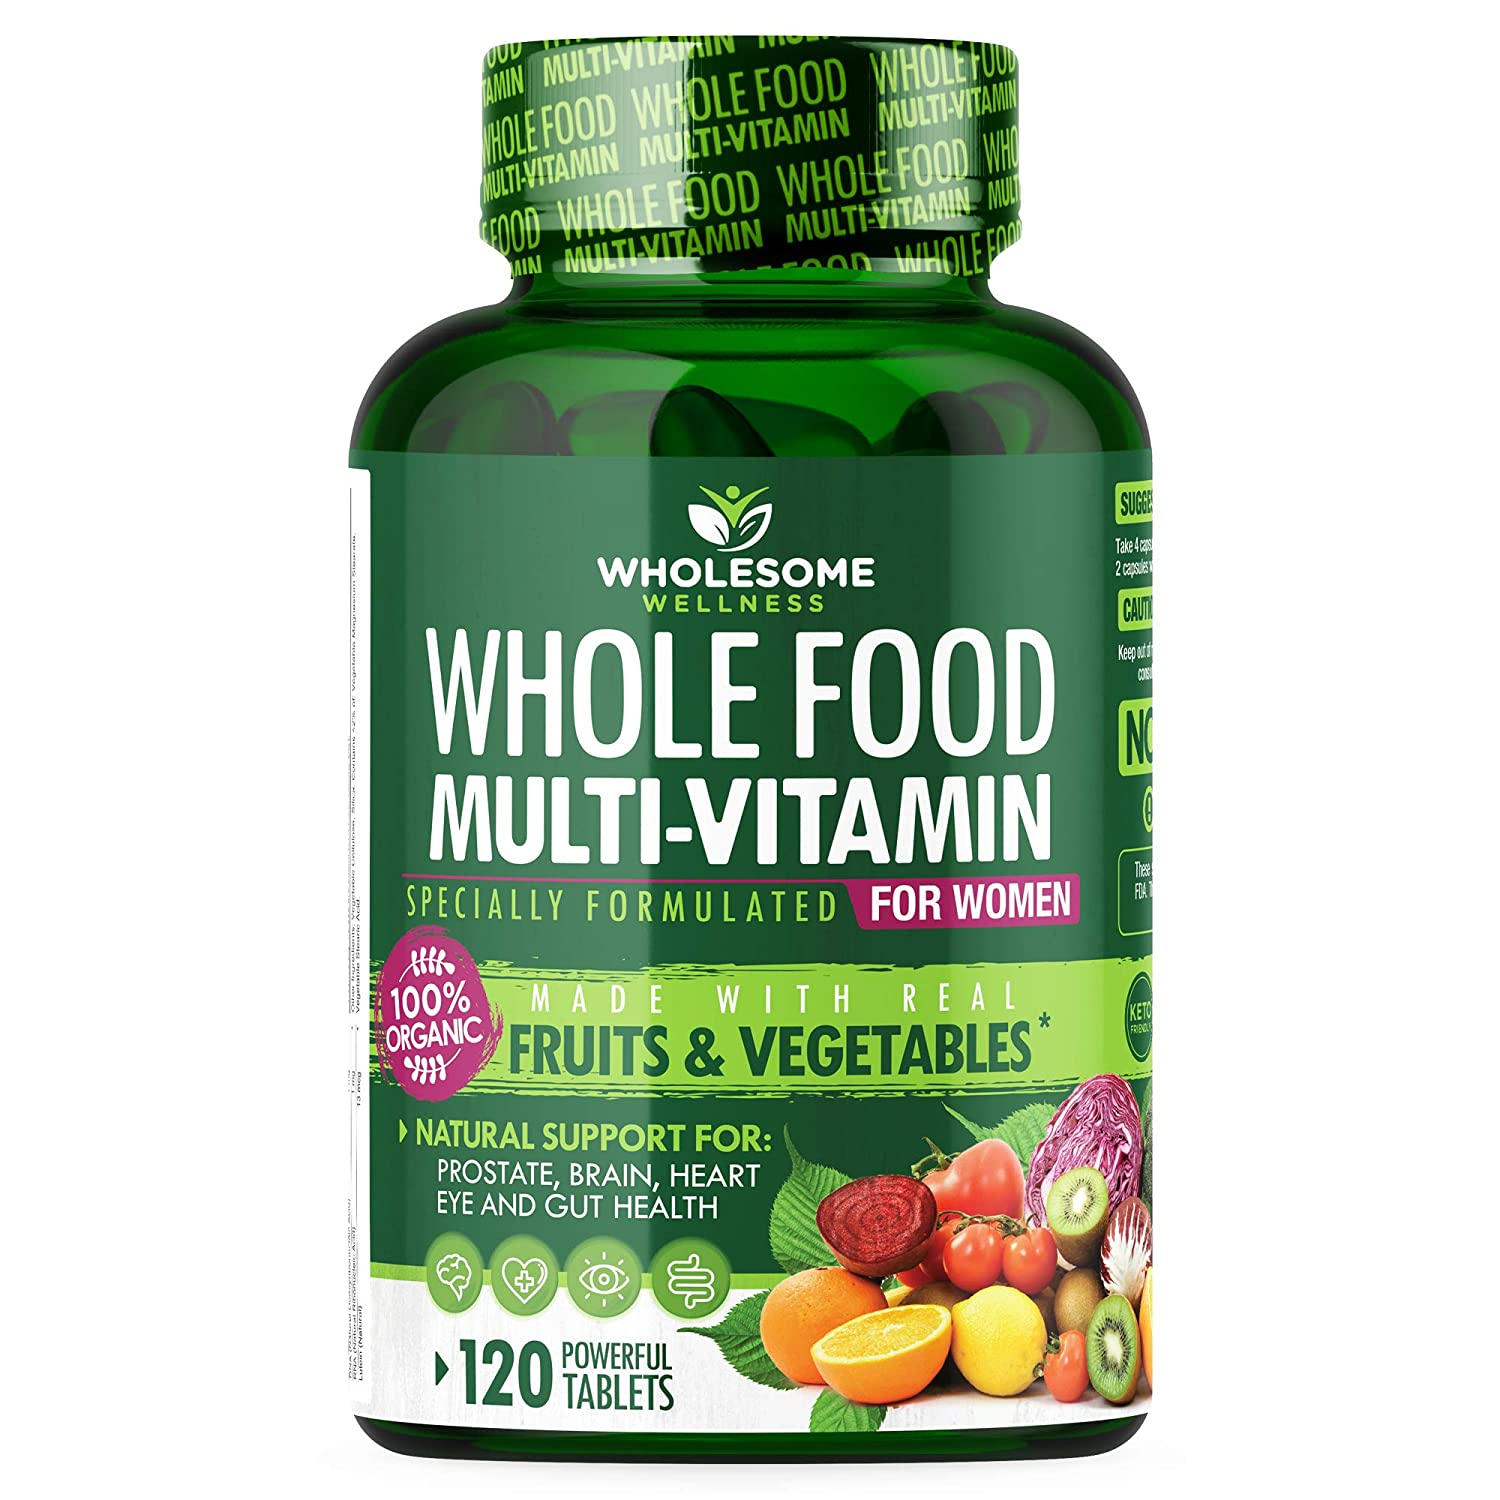 Whole Food Multivitamin for Women - Natural Multi Vitamins, Minerals, Organic Extracts - Vegan Vegetarian - Best for Daily Energy, Brain, Heart & Eye Health - 120 Tablets